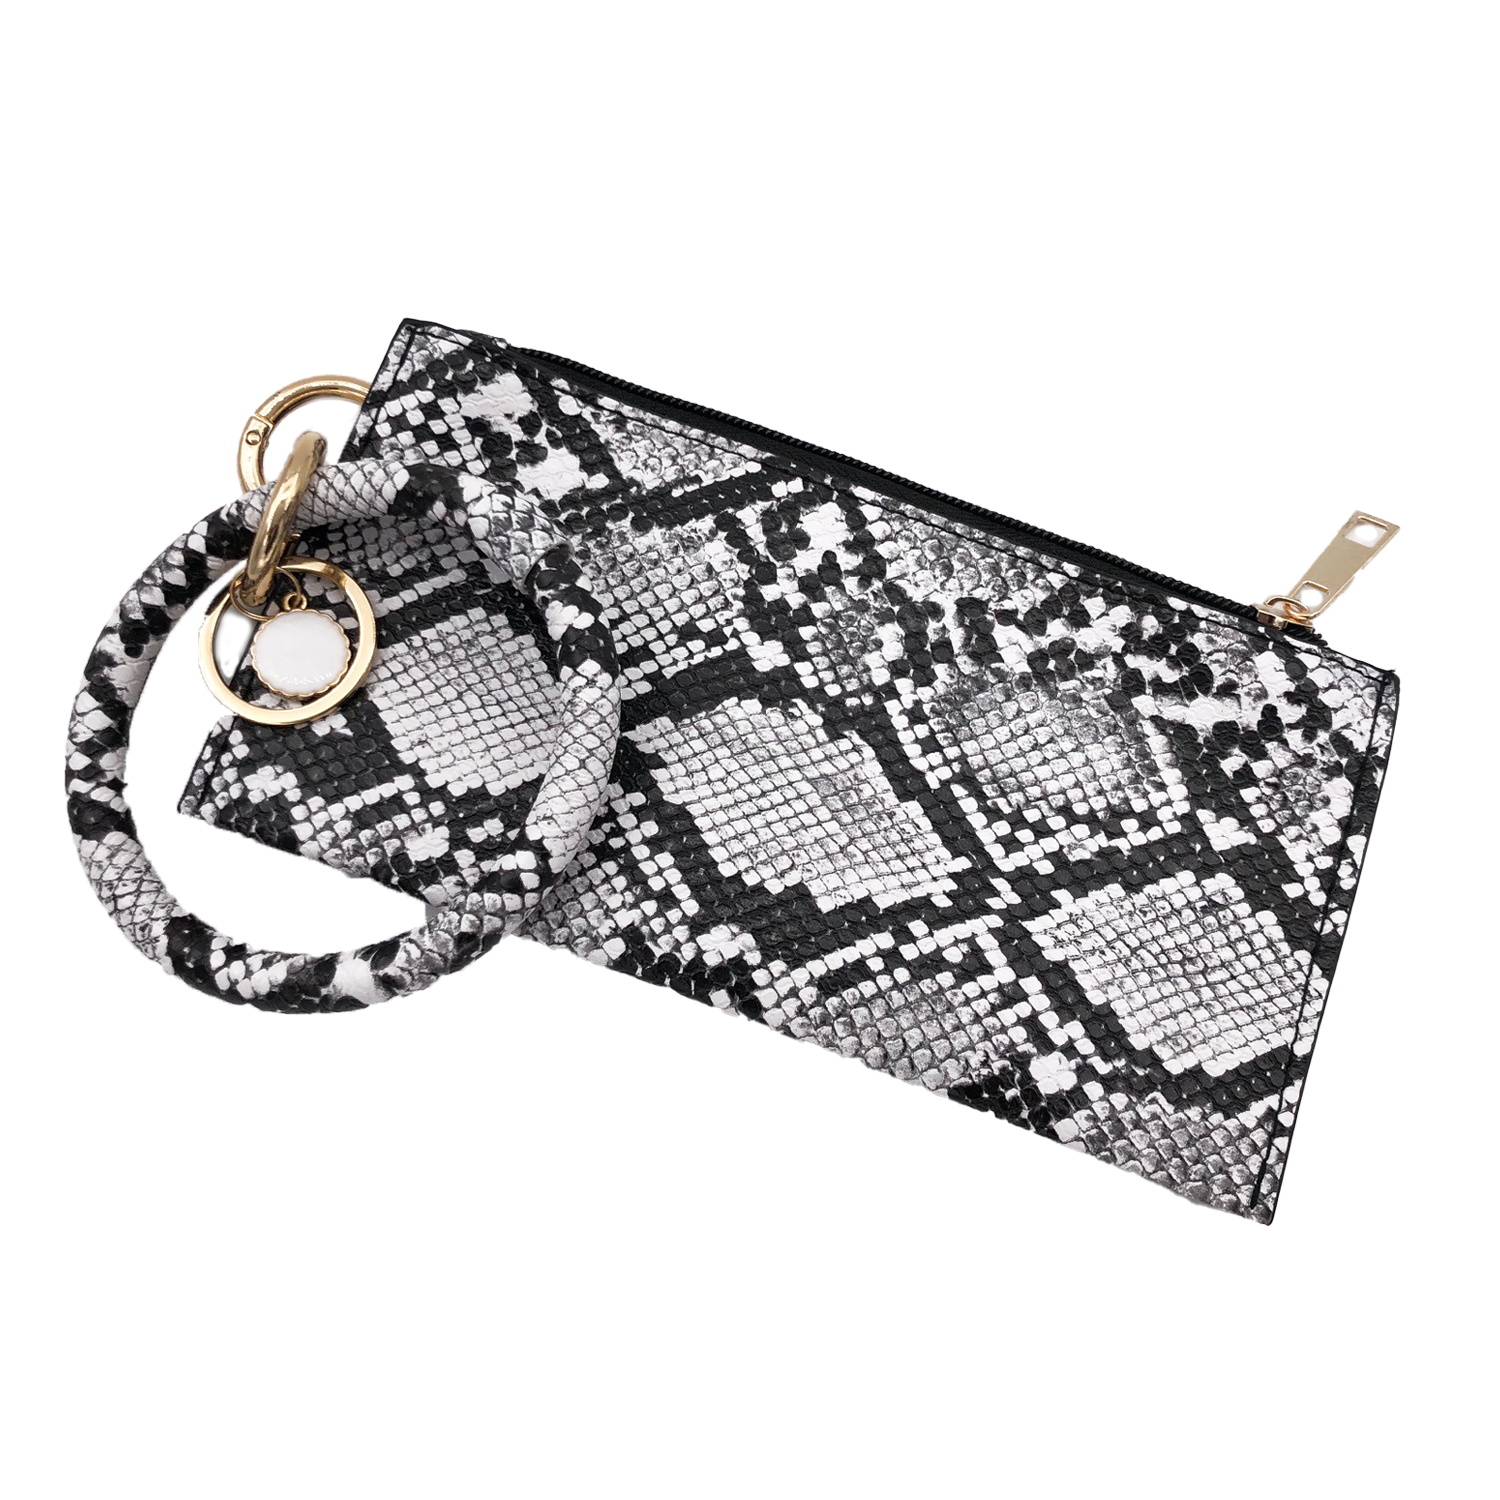 CL-8848 Wristlet Clutch Black Snake